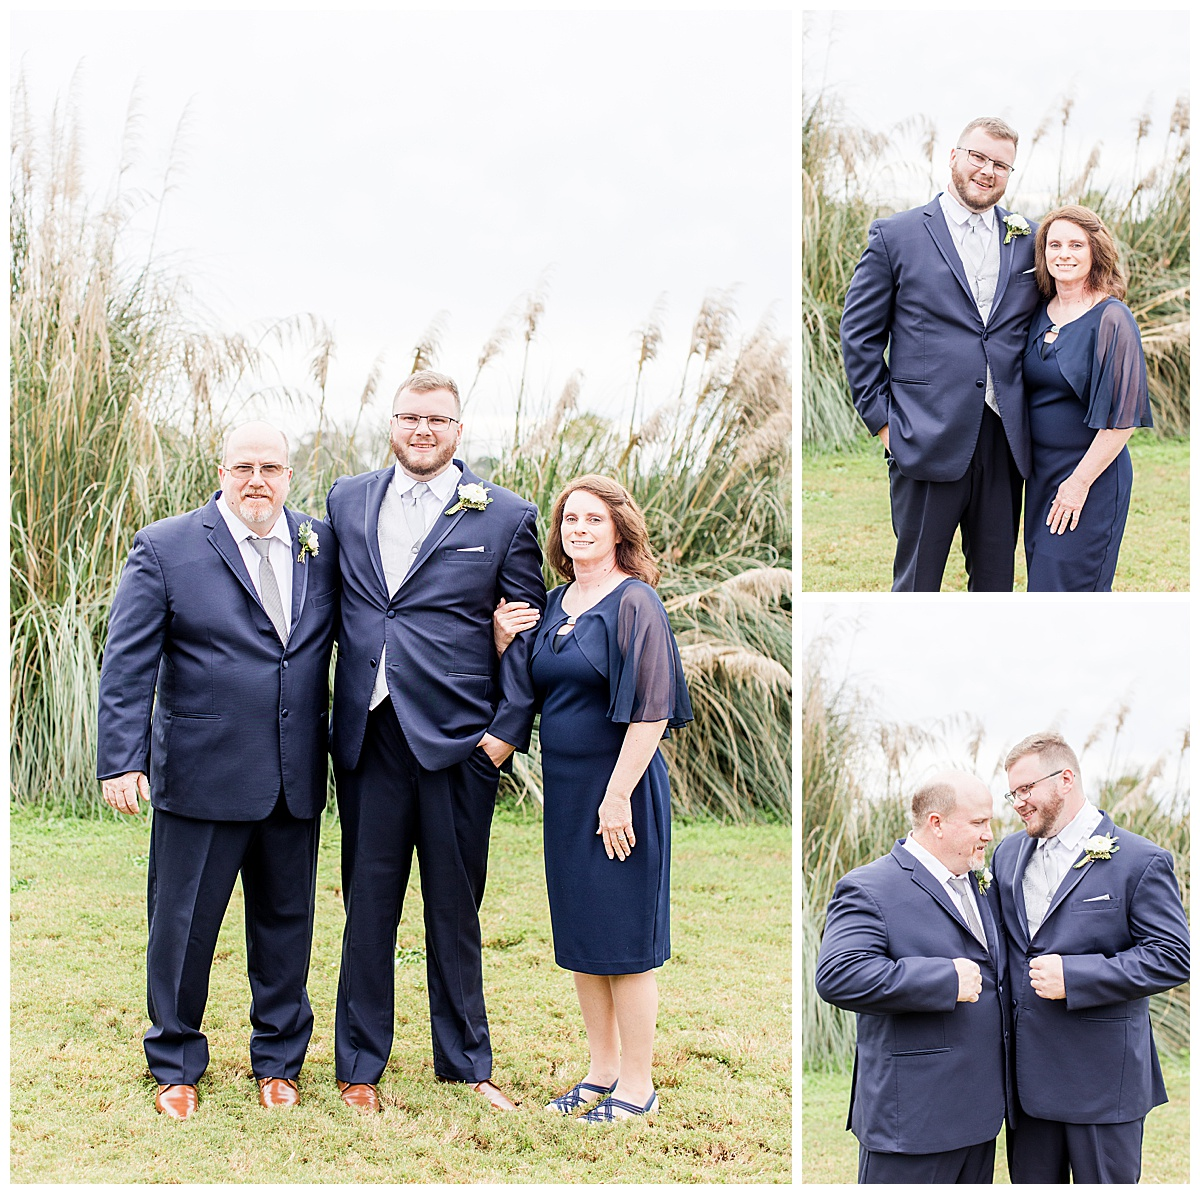 Formal Family Portraits on the wedding day at Laurel Hill Farm